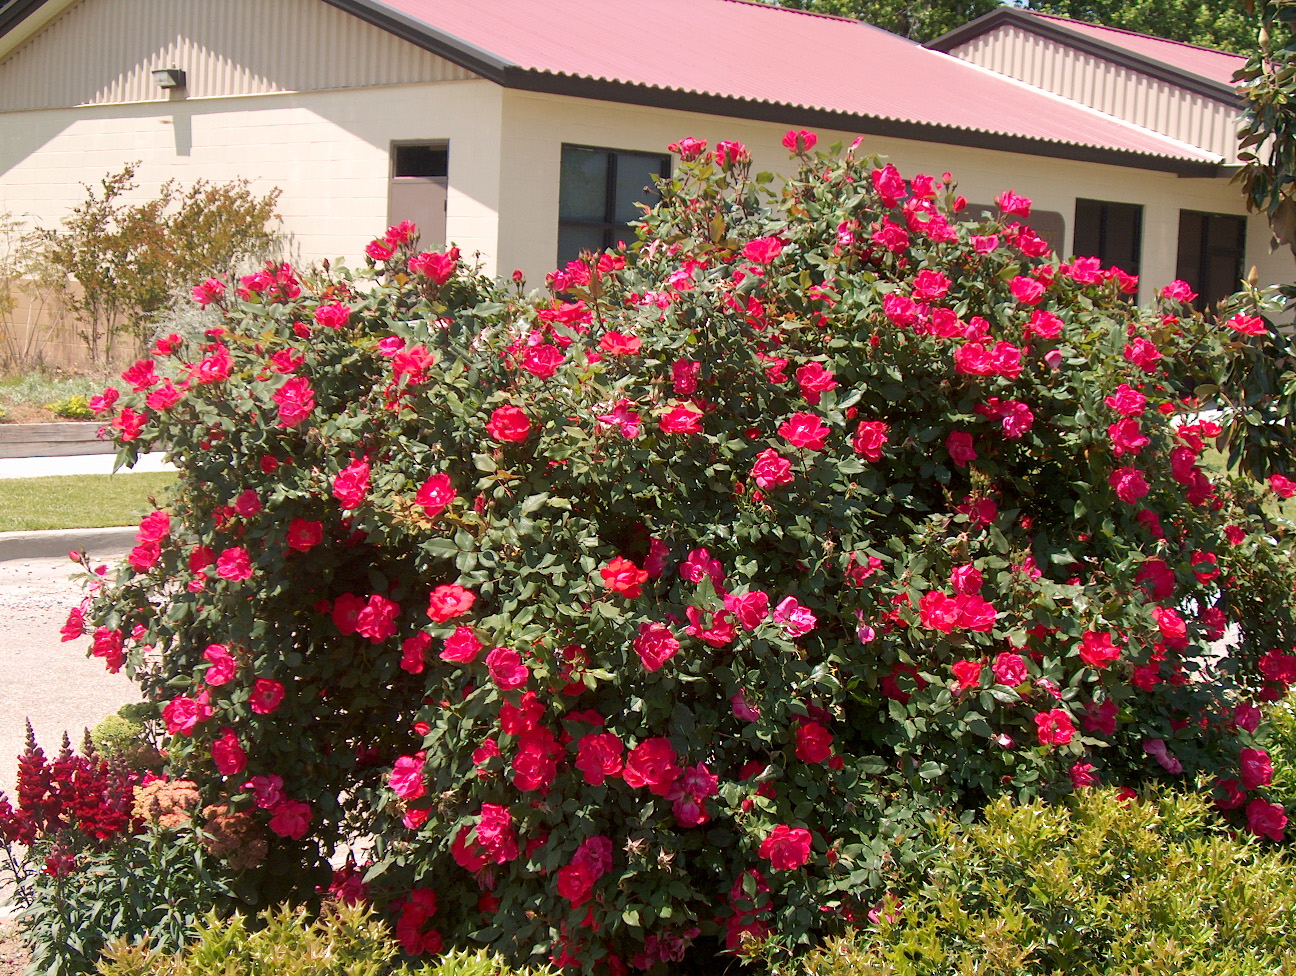 Get it growing now is the time to plant roses bossier press tribune - When to plant roses ...